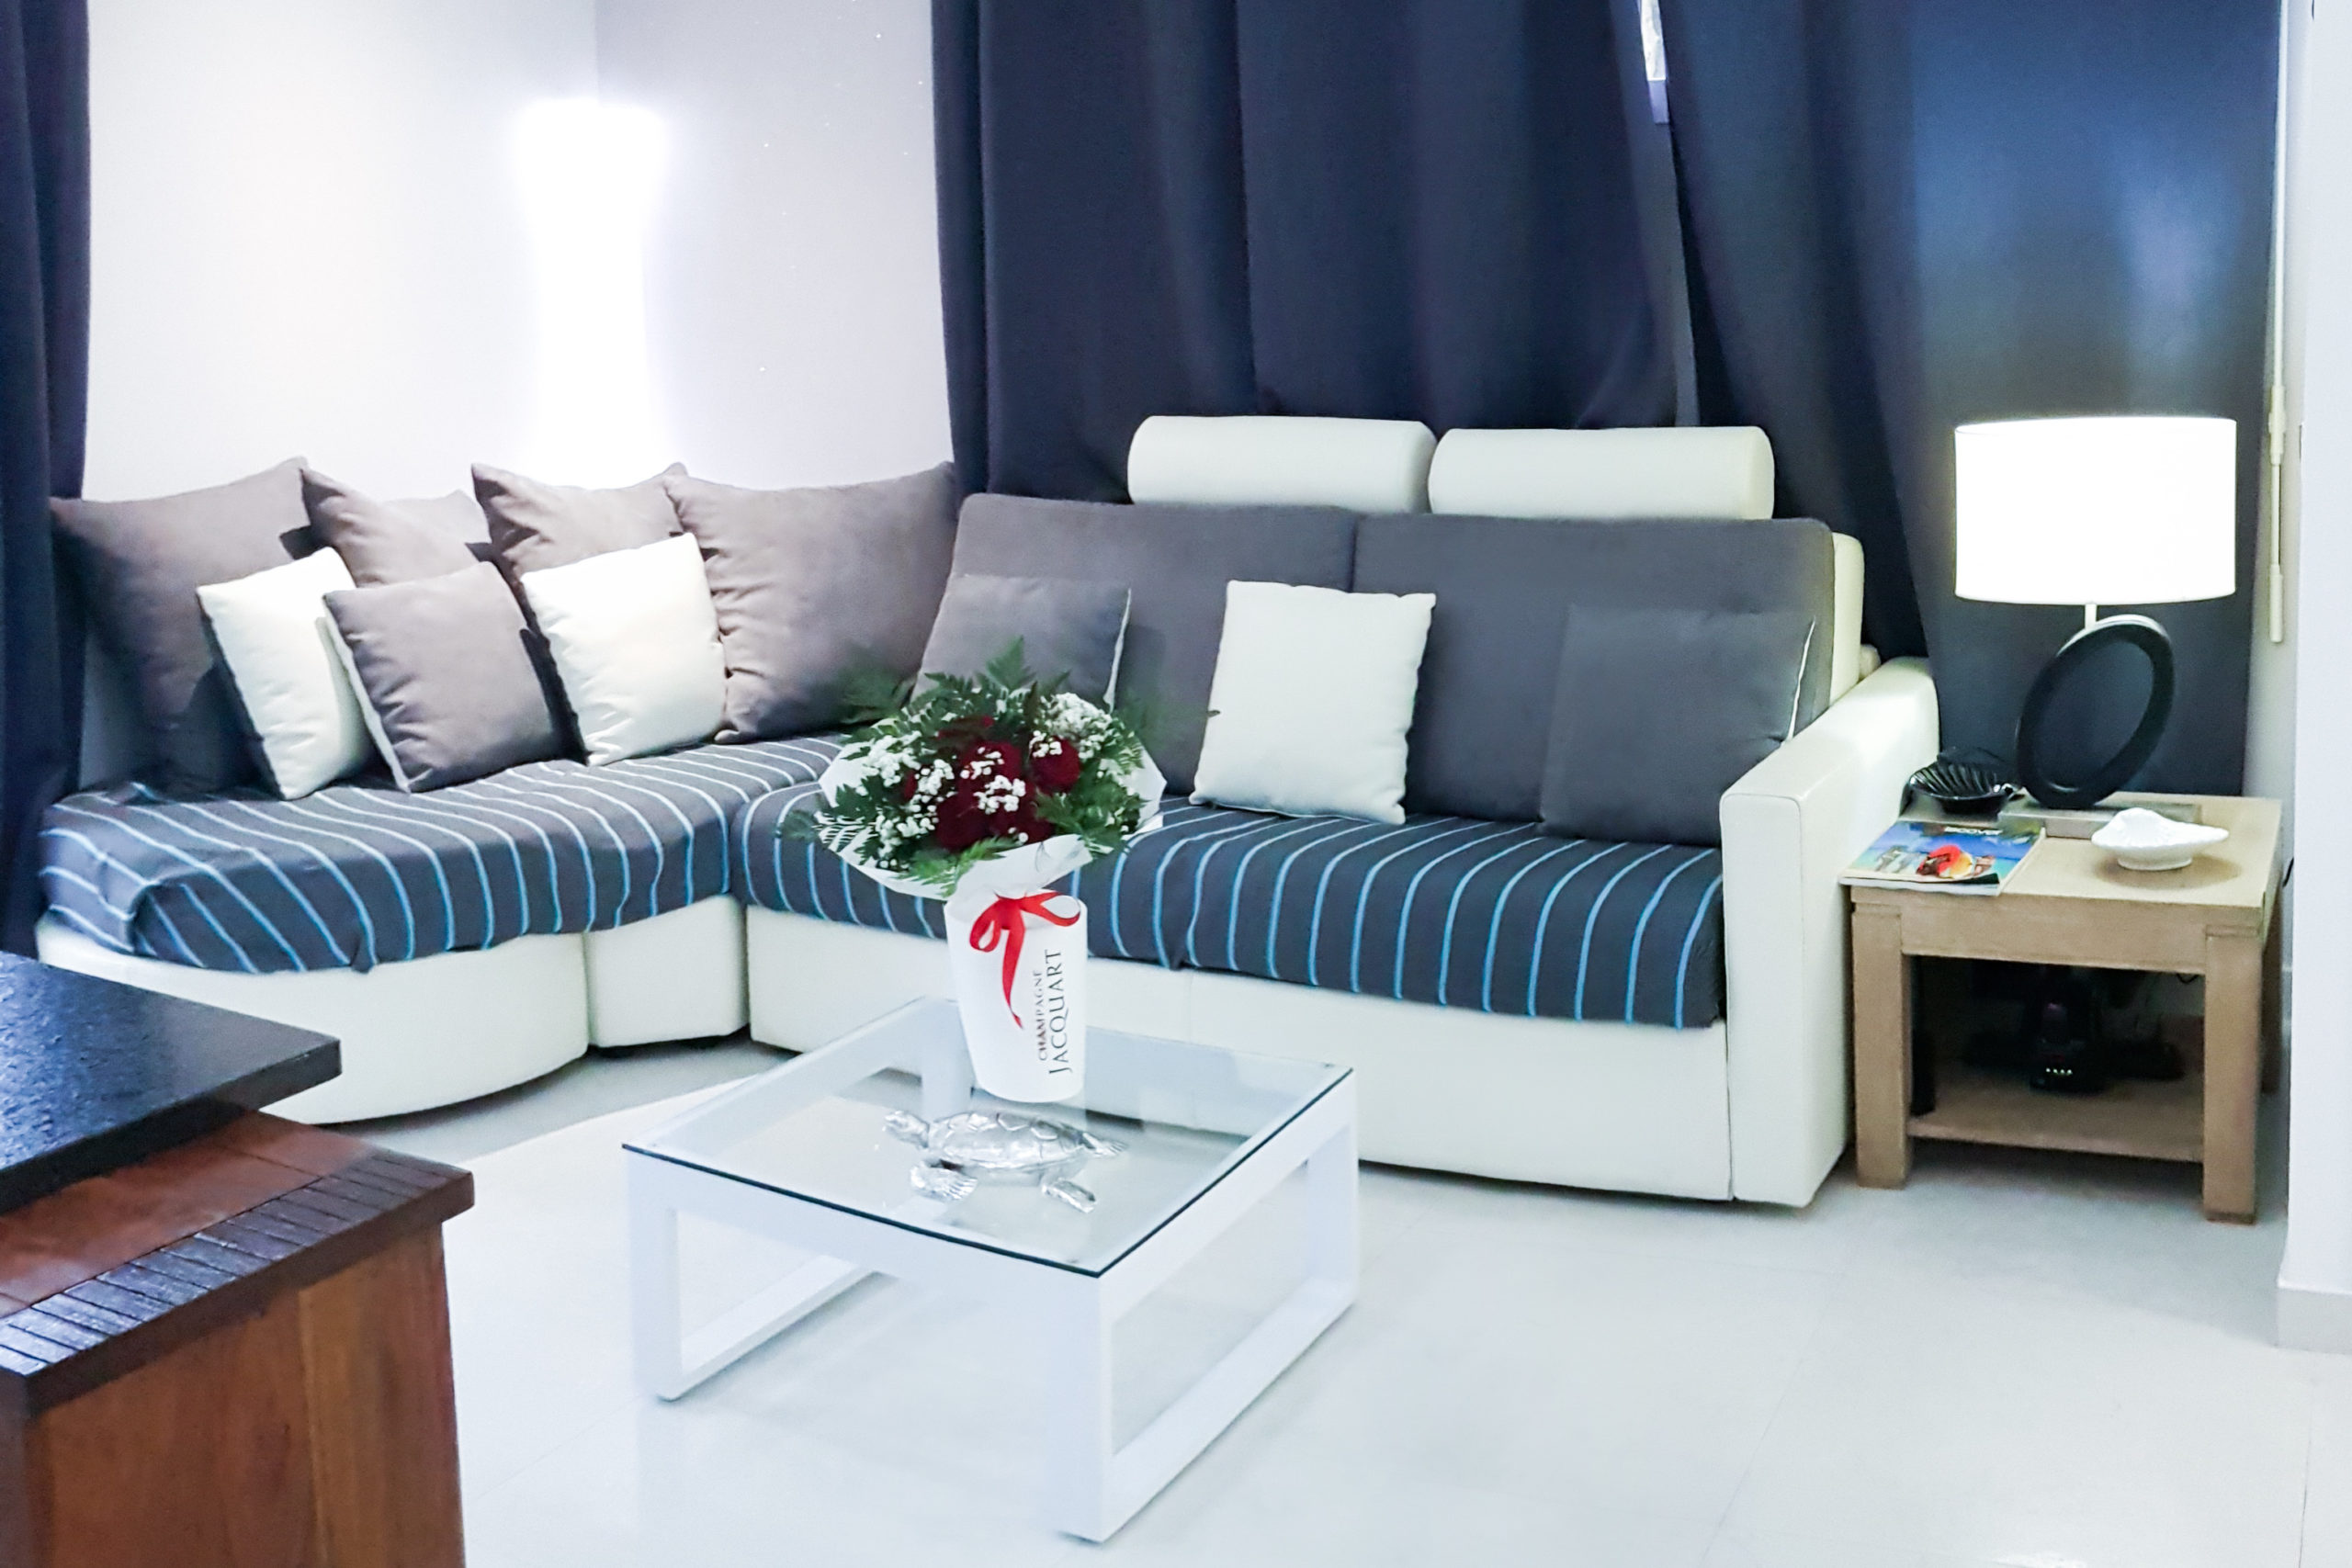 """Adam"" Studio - Sofa bed with a bouquet of flowers sofa bed with a bouquet of flowers for a client's wedding anniversary"